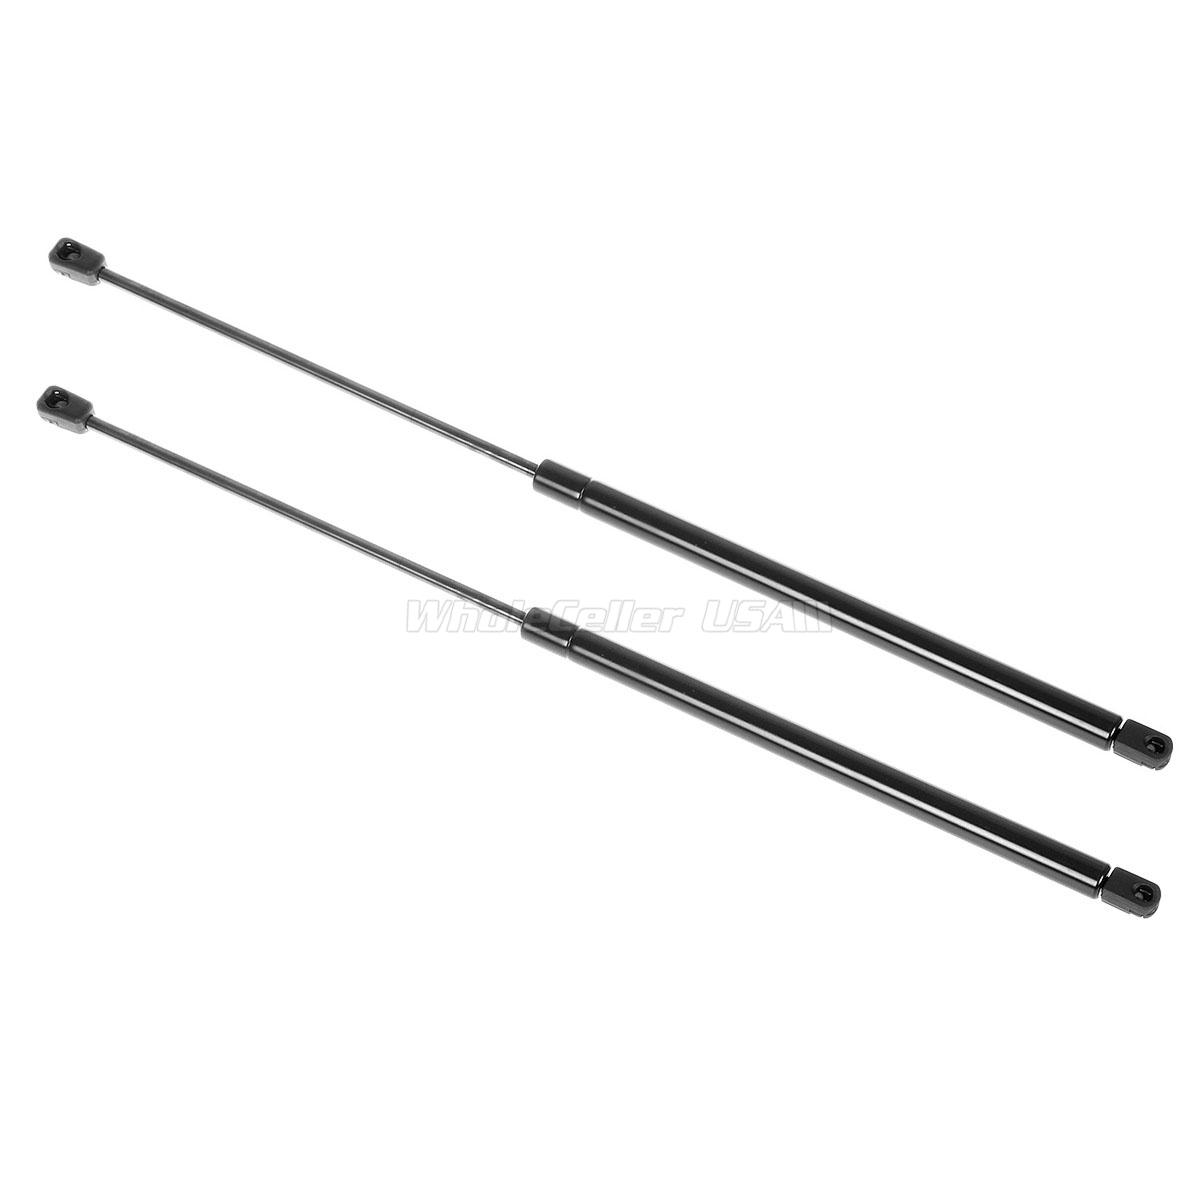 Qty (2) Front Hood Gas Charged Lift Support Struts For